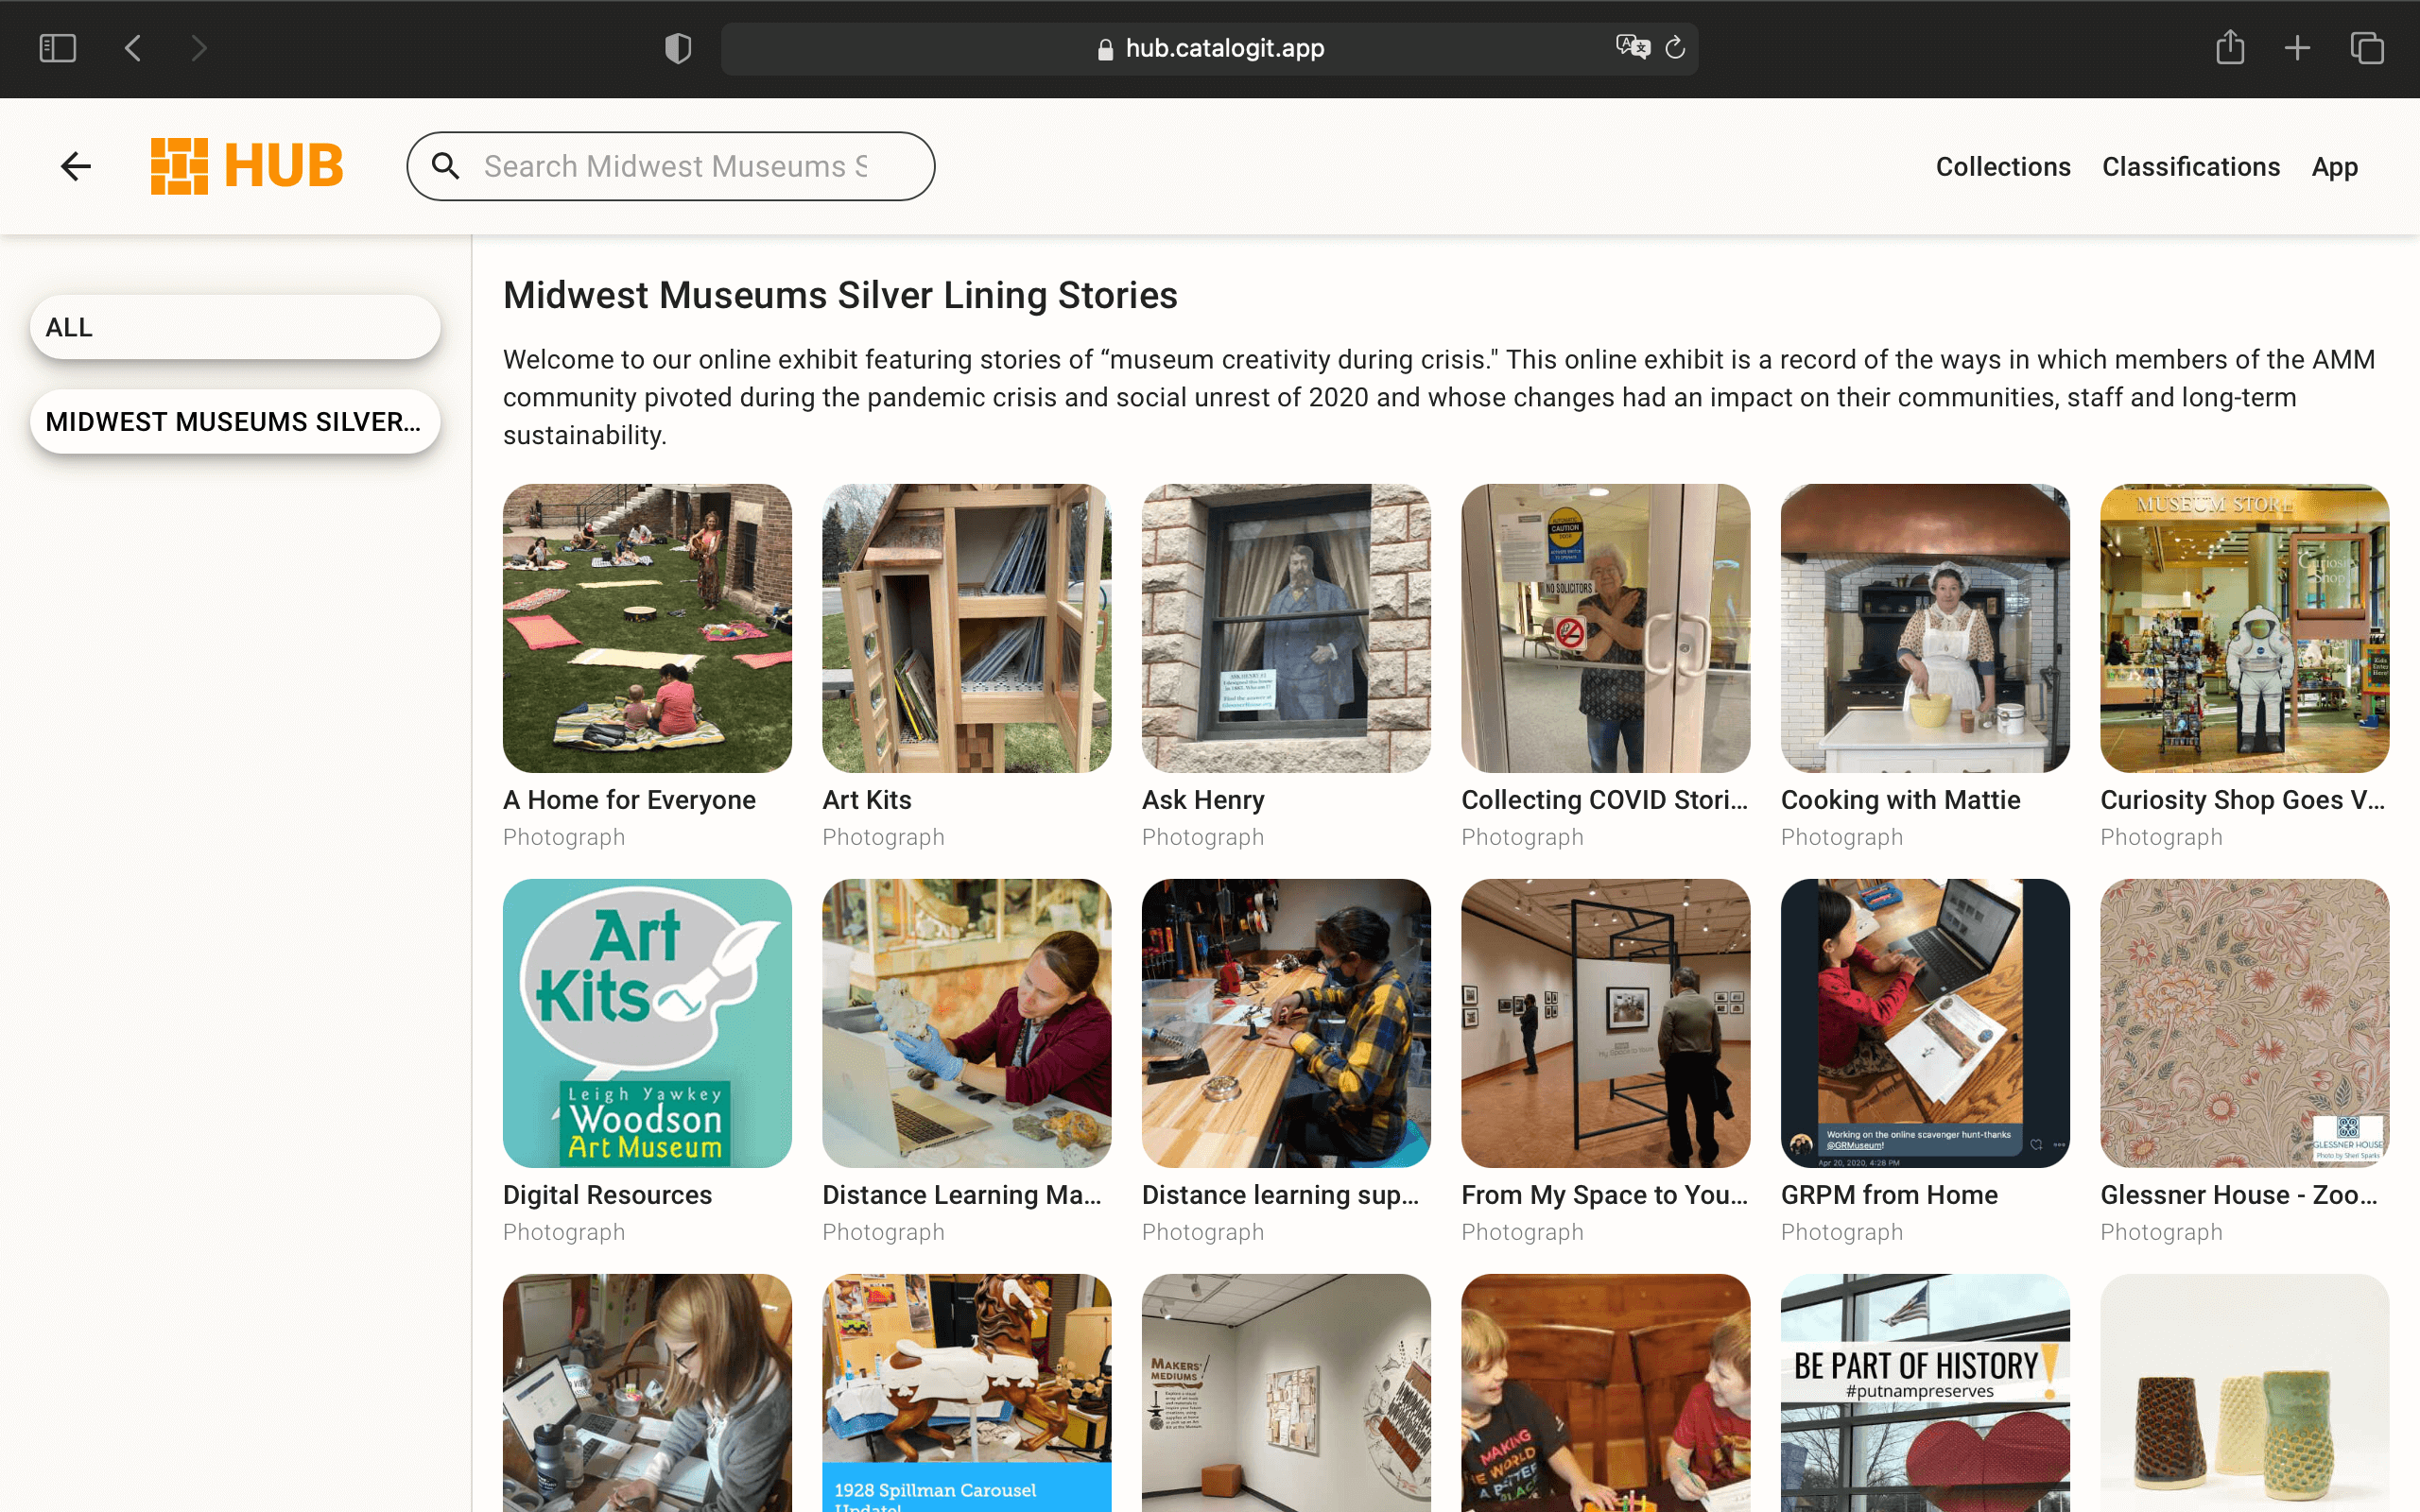 A screenshot of the Association of Midwest Museums' HUB page.